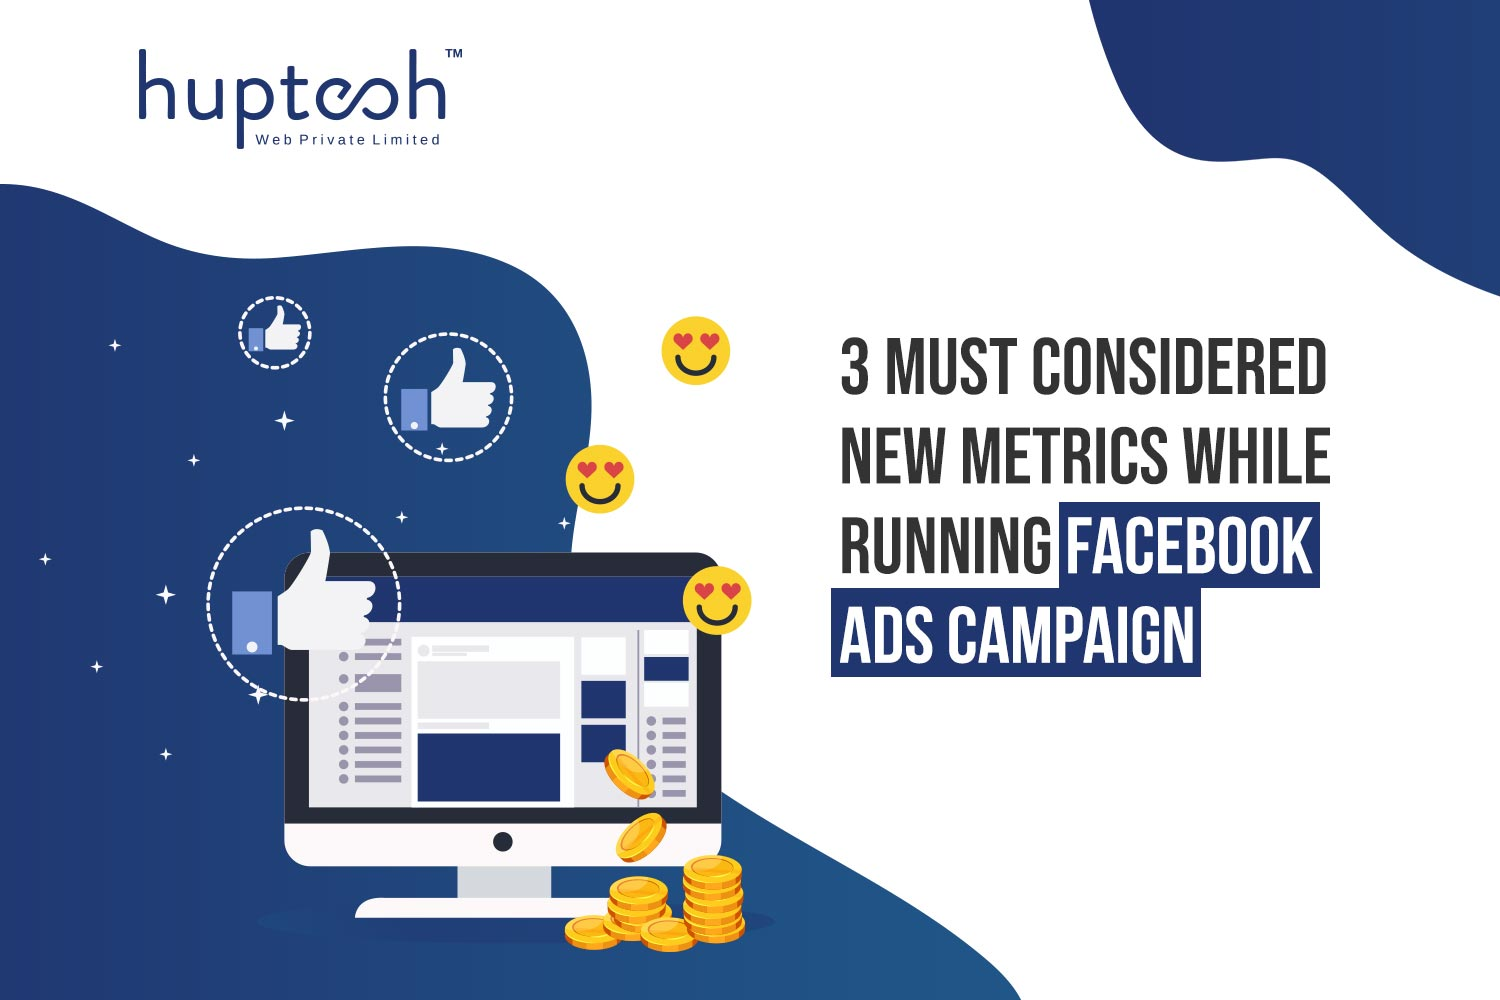 Tips To Consider While Running Facebook Ads Campaig